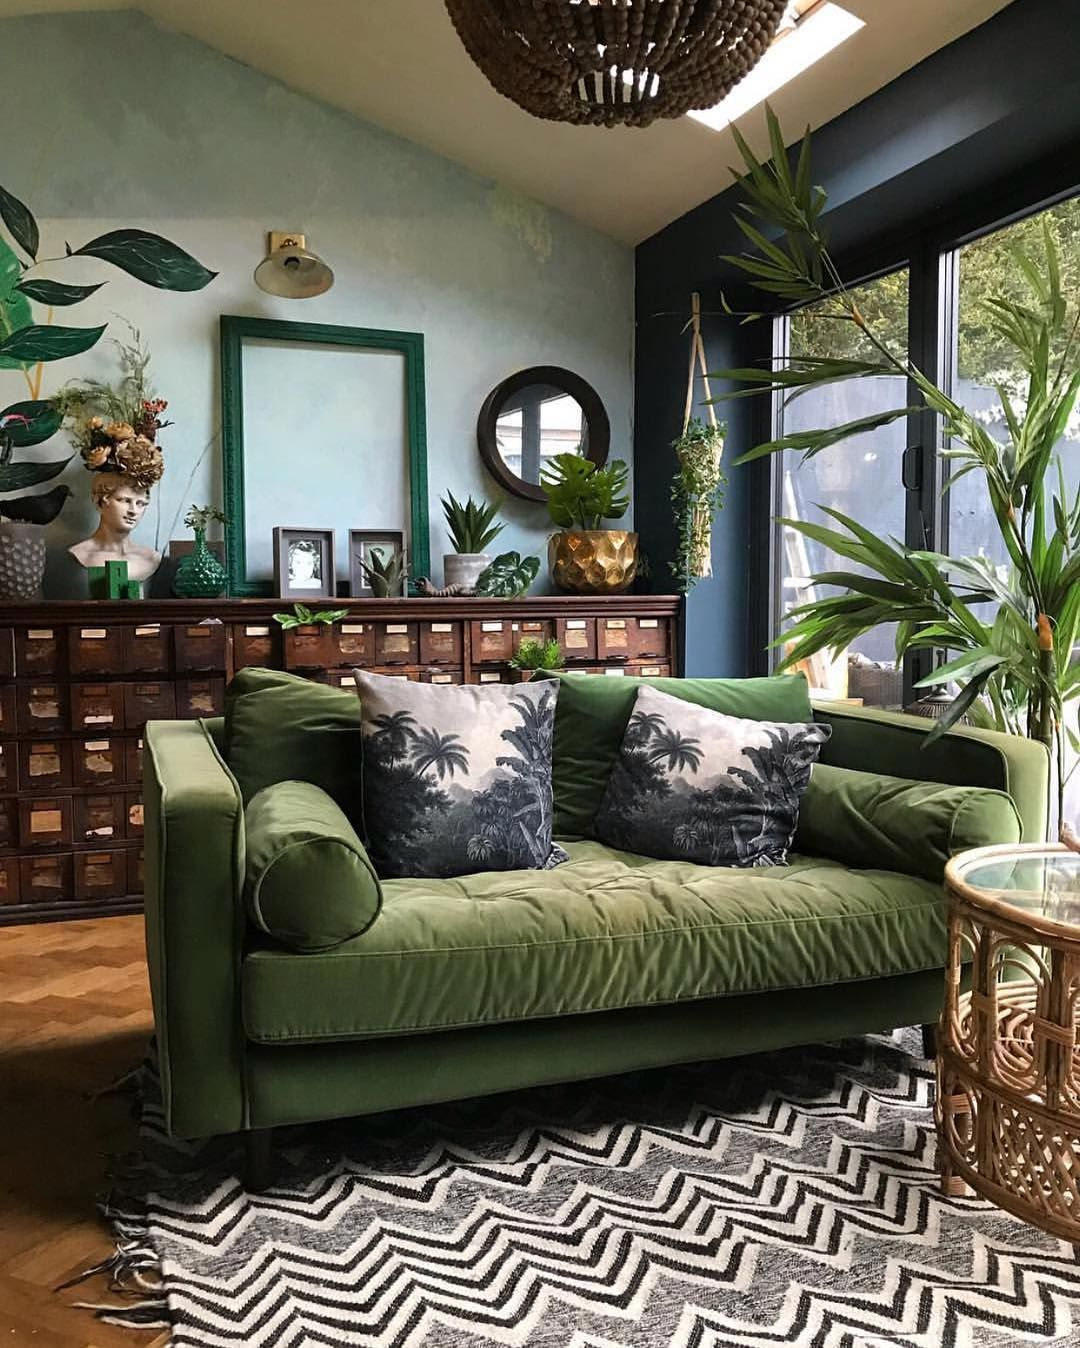 73 Eclectic Living Room Decor Ideas: 20+ Popular Bedroom Paint Colors That Give You Positive